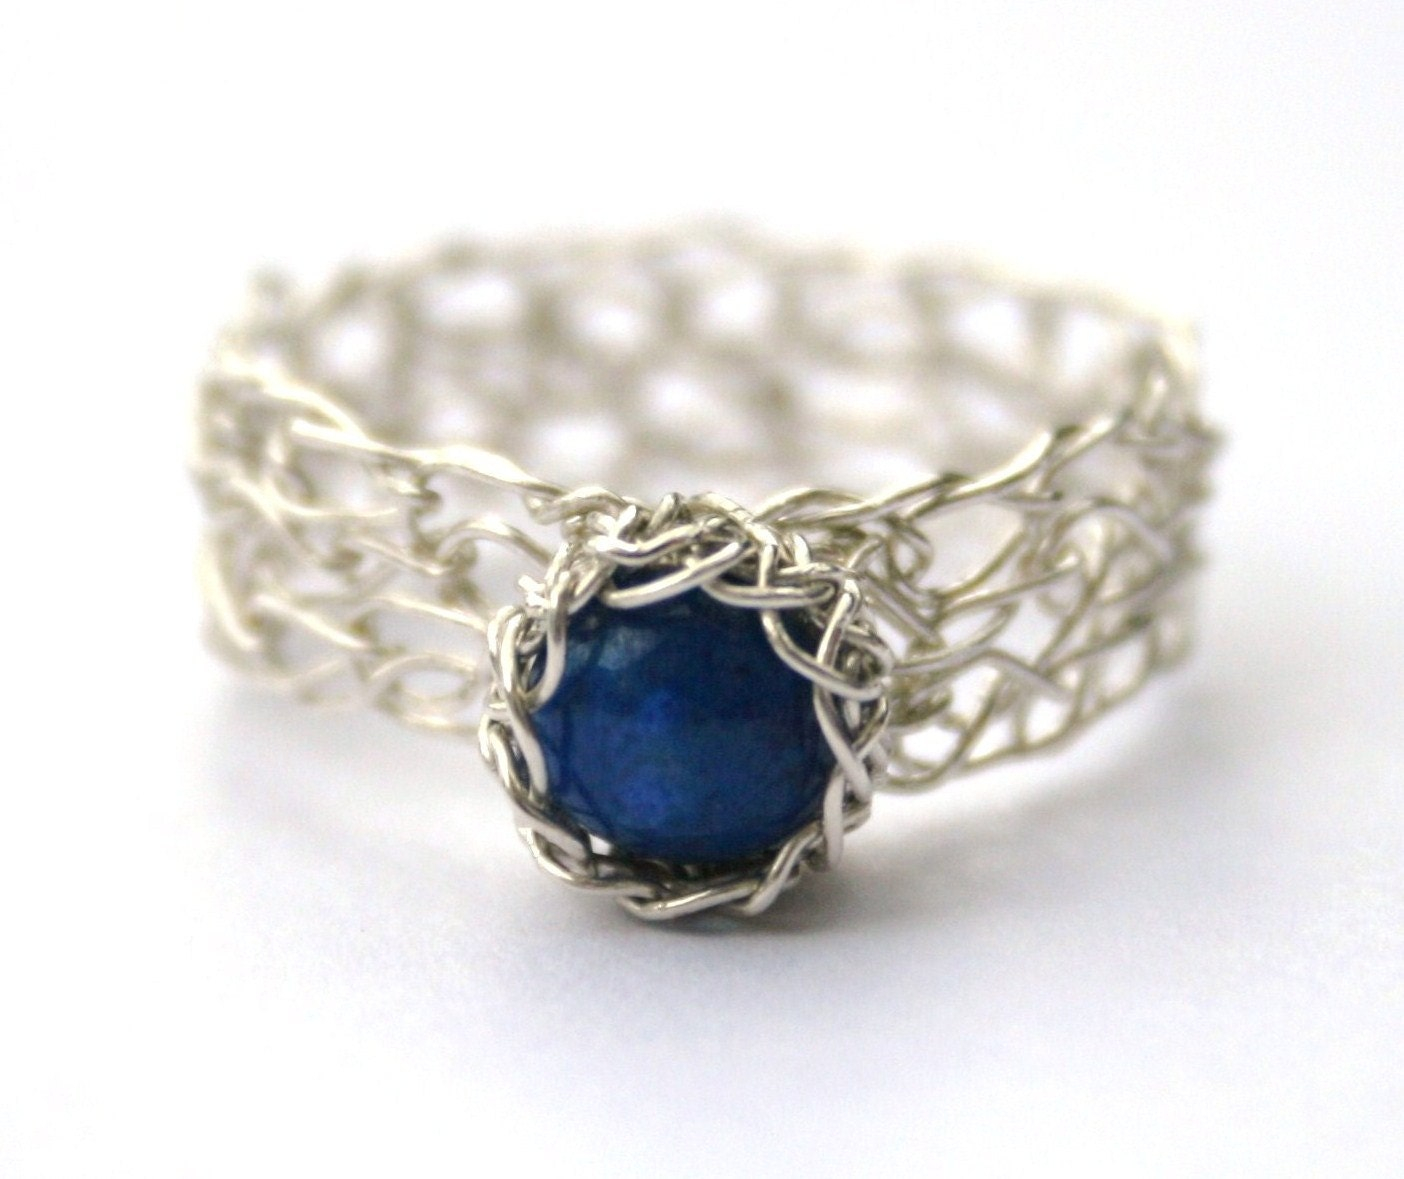 Crocheting Rings : Lapis Lazuli Silver Ring Wire Crocheted by WrappedbyDesign